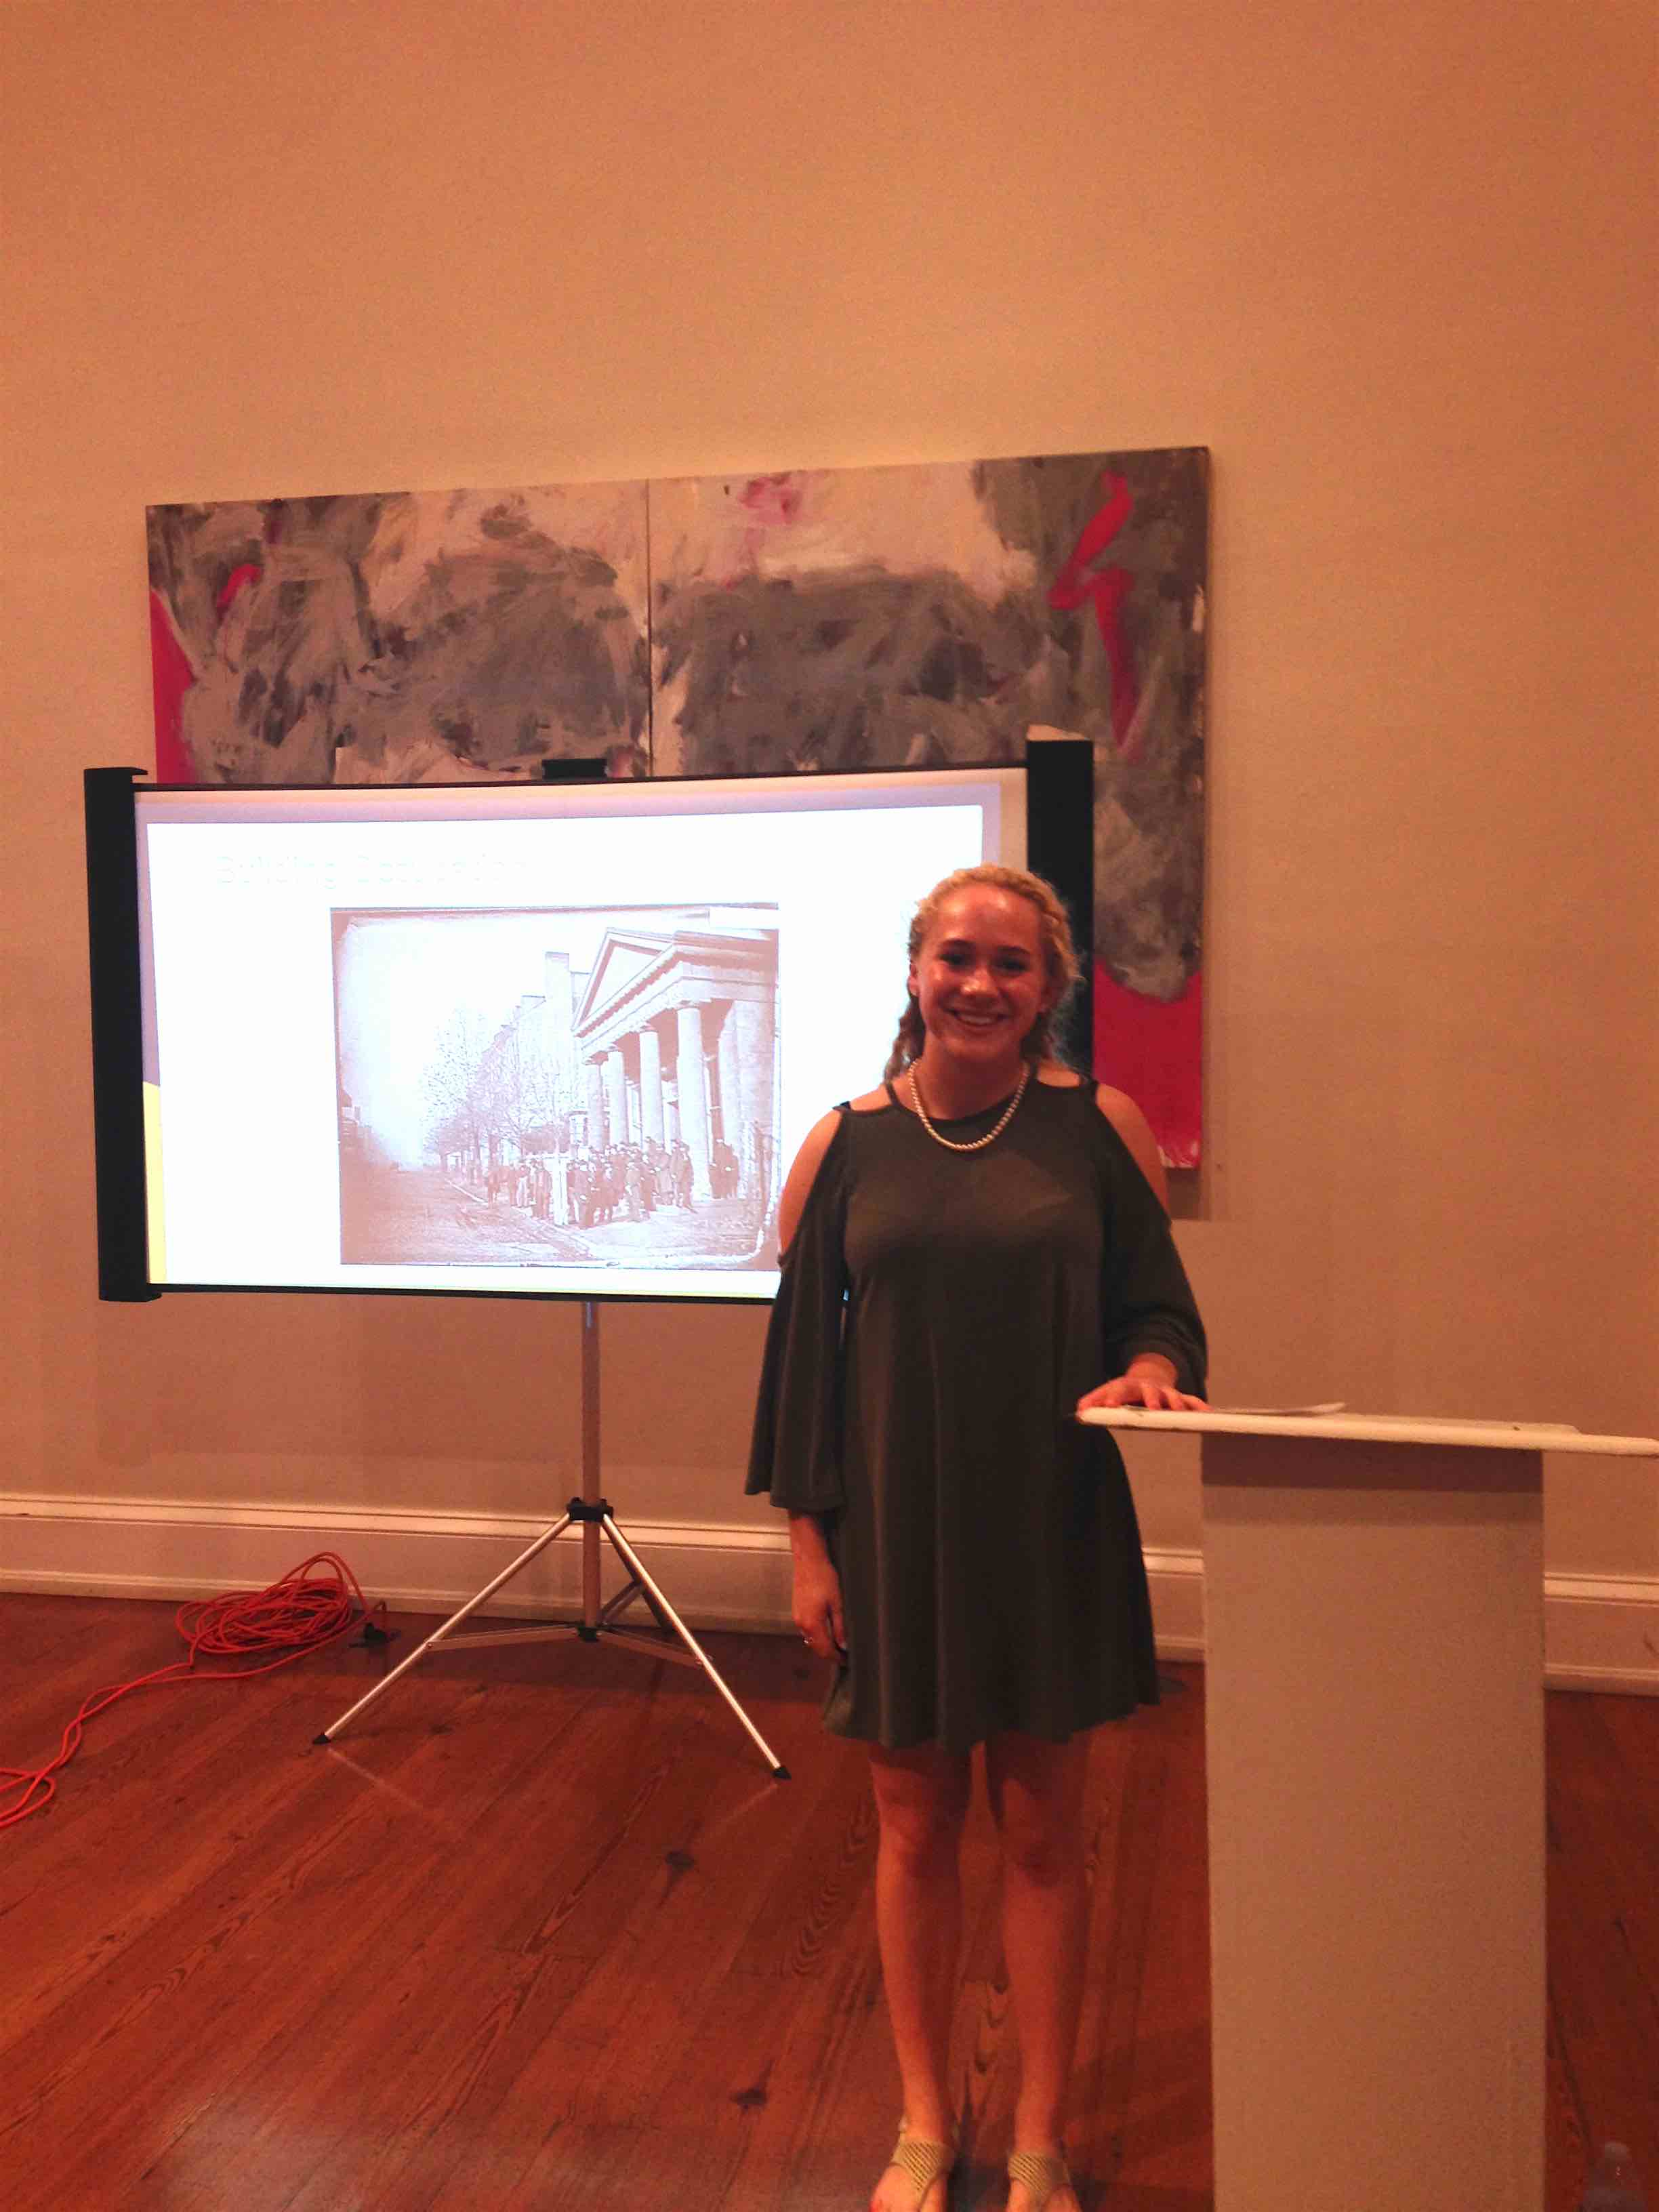 Meredith barber spent part of her internship at the Athenaeum researching the building's history.